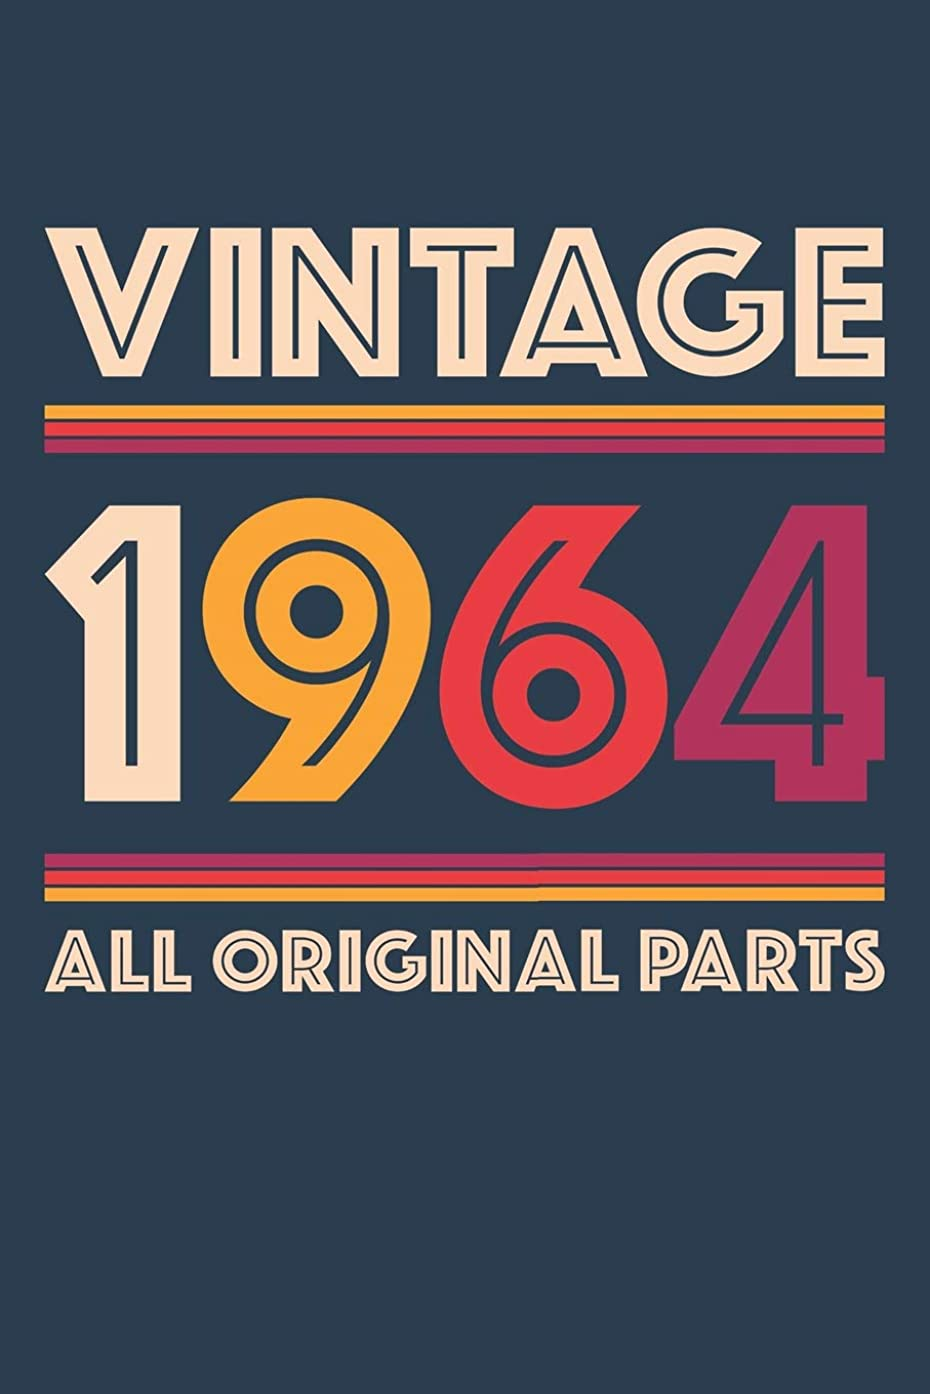 Vintage 1964 Notebook 'All Original Parts' - 55 Years Old Birthday Planner - Retro Journal for Women and Men - 55th Birthday Gift: Medium ... Diary, 110 page, Lined, 6x9 (15.2 x 22.9 cm)